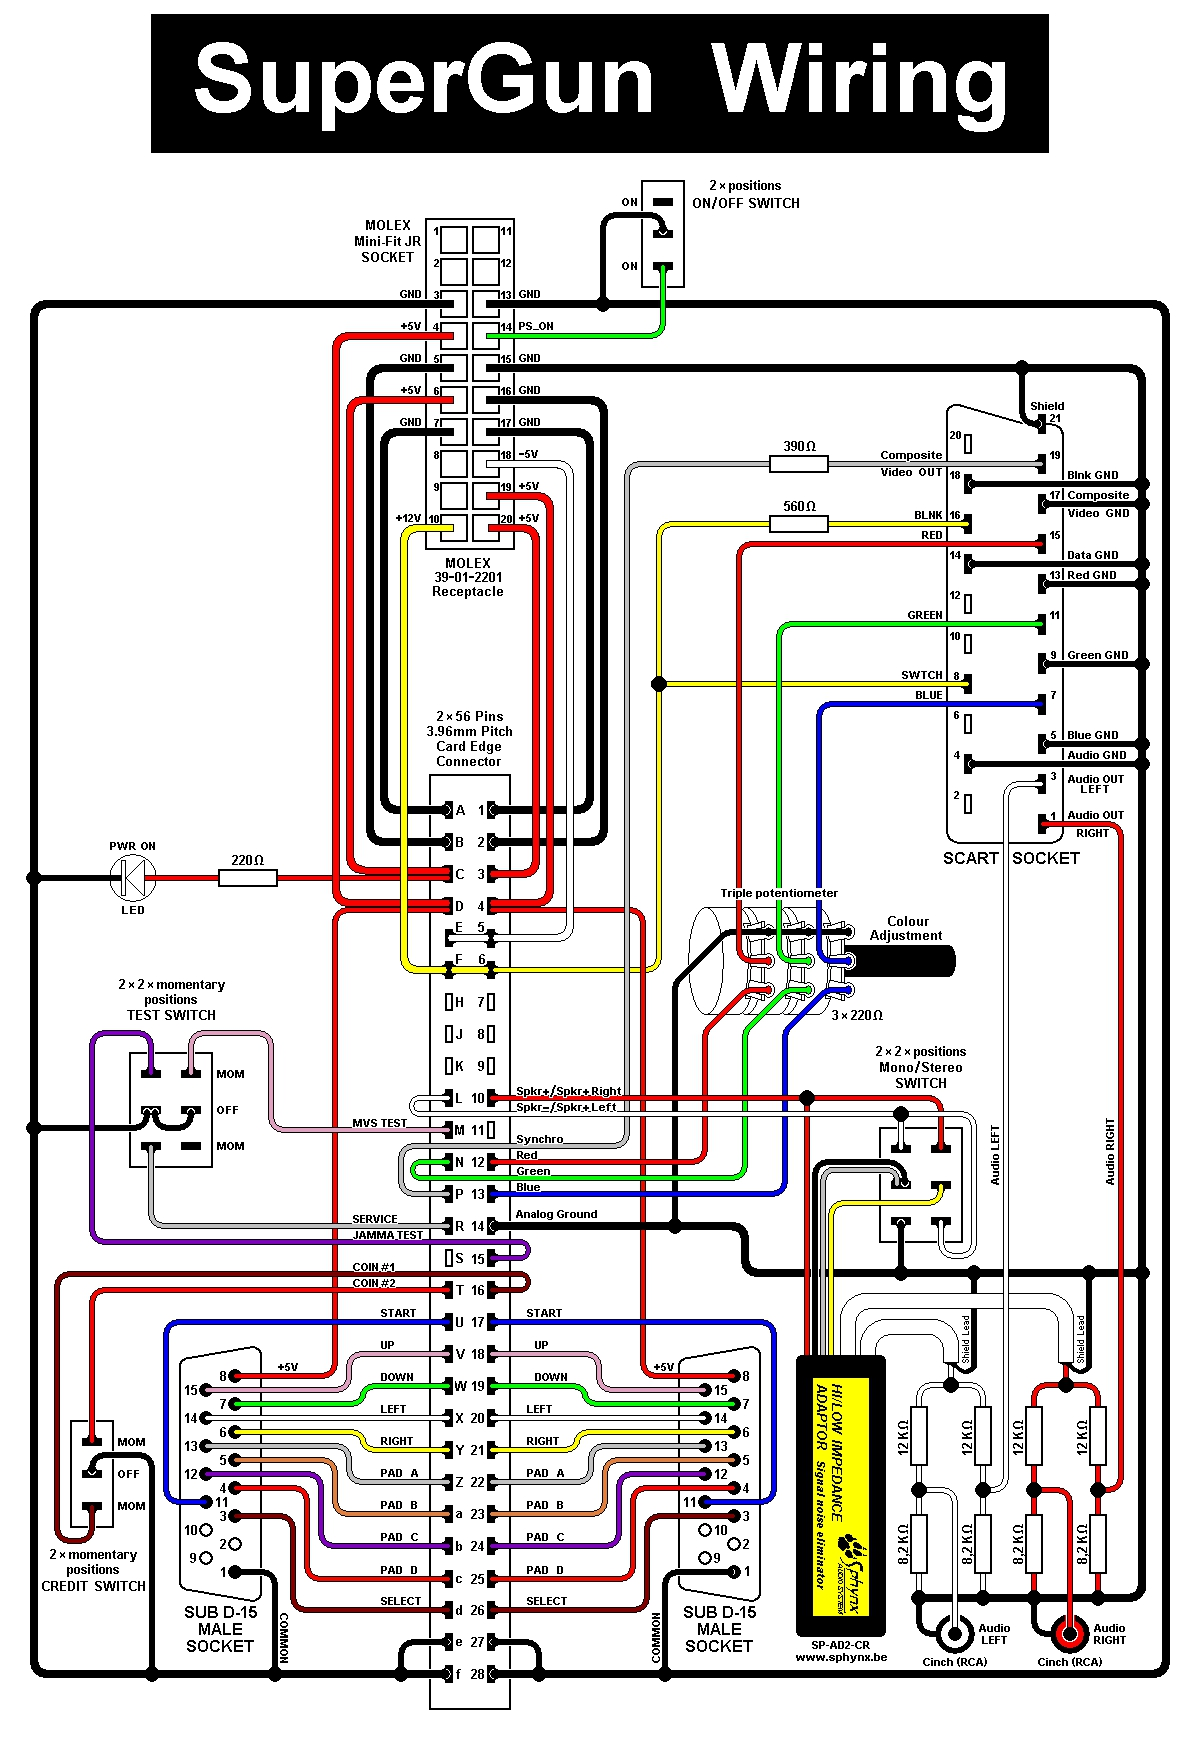 SuperGun jamma supergun 8bitplus jamma wiring harness diagram at suagrazia.org